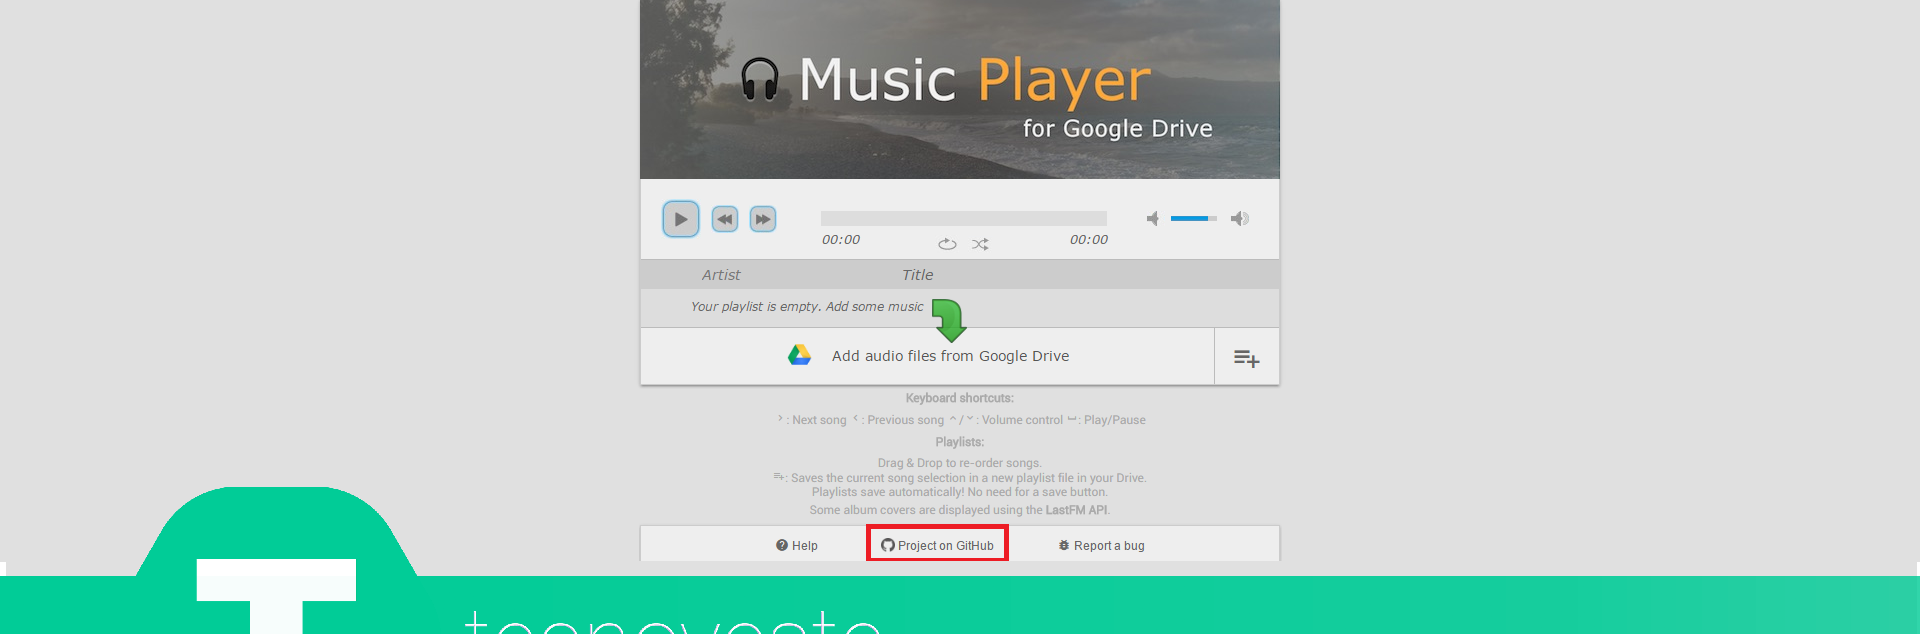 how to put music on google drive